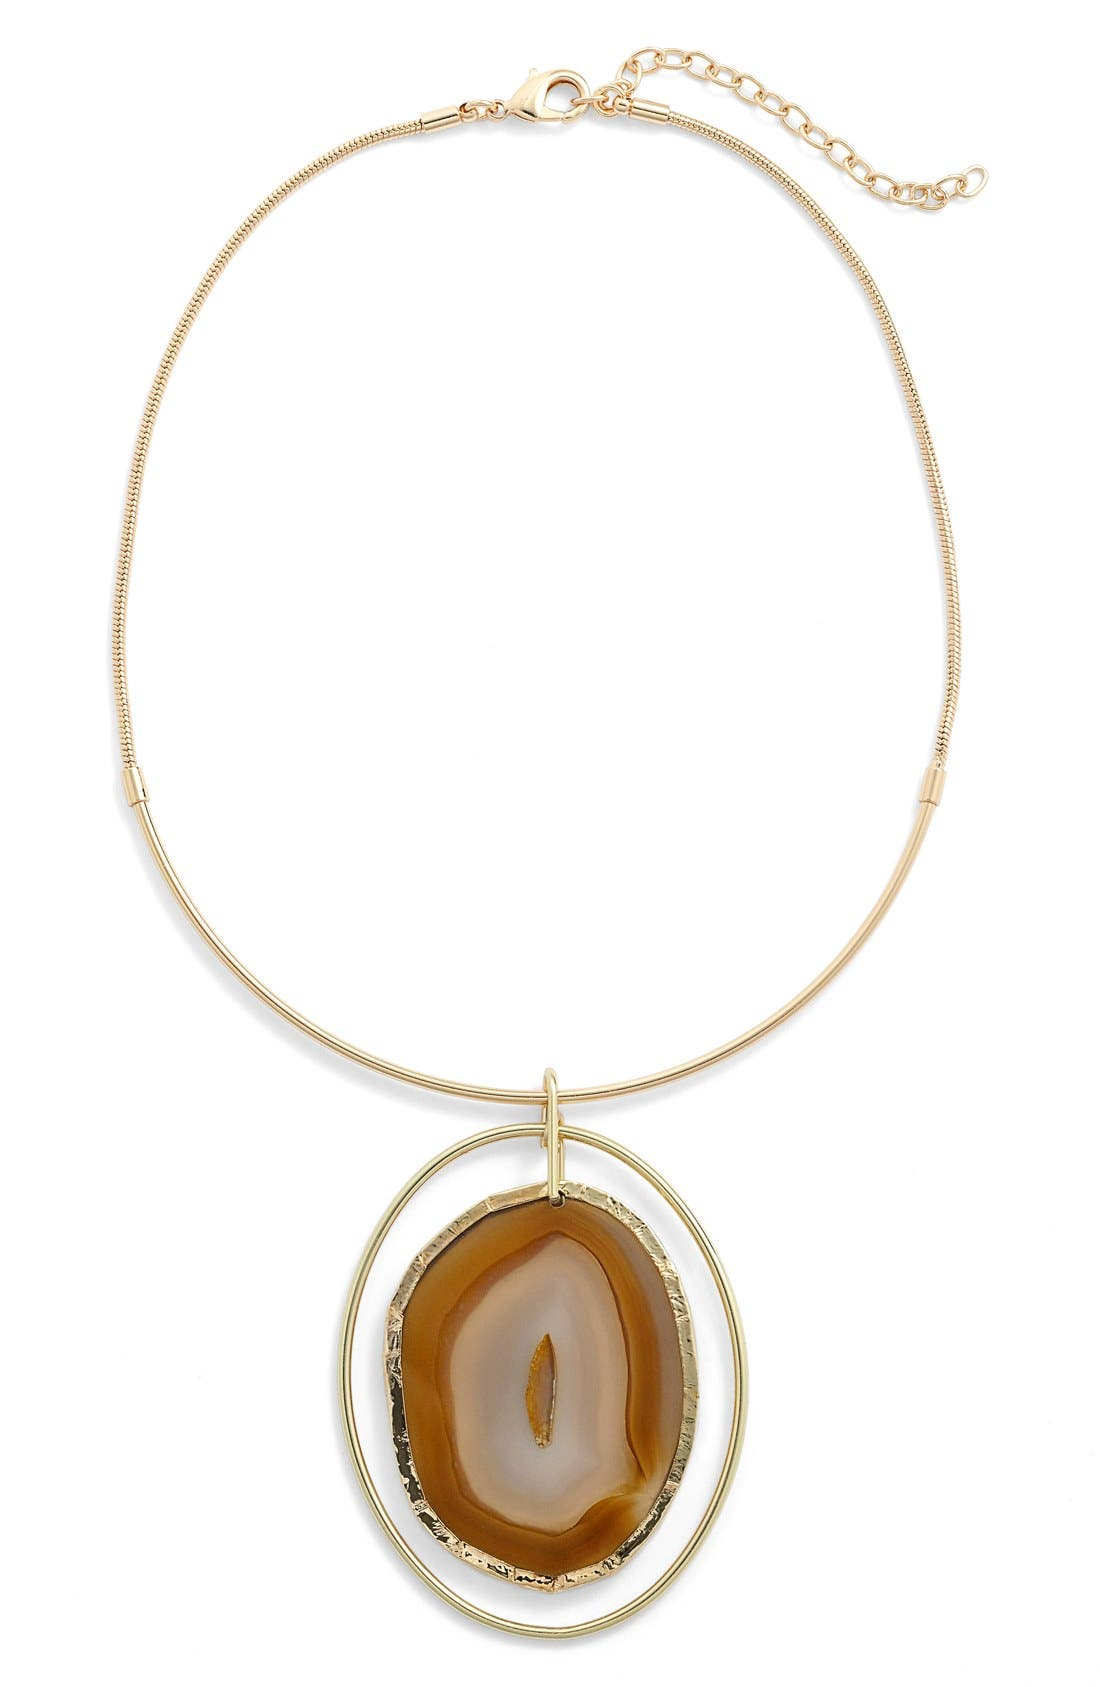 Main Image - Nordstrom Agate Collar Necklace